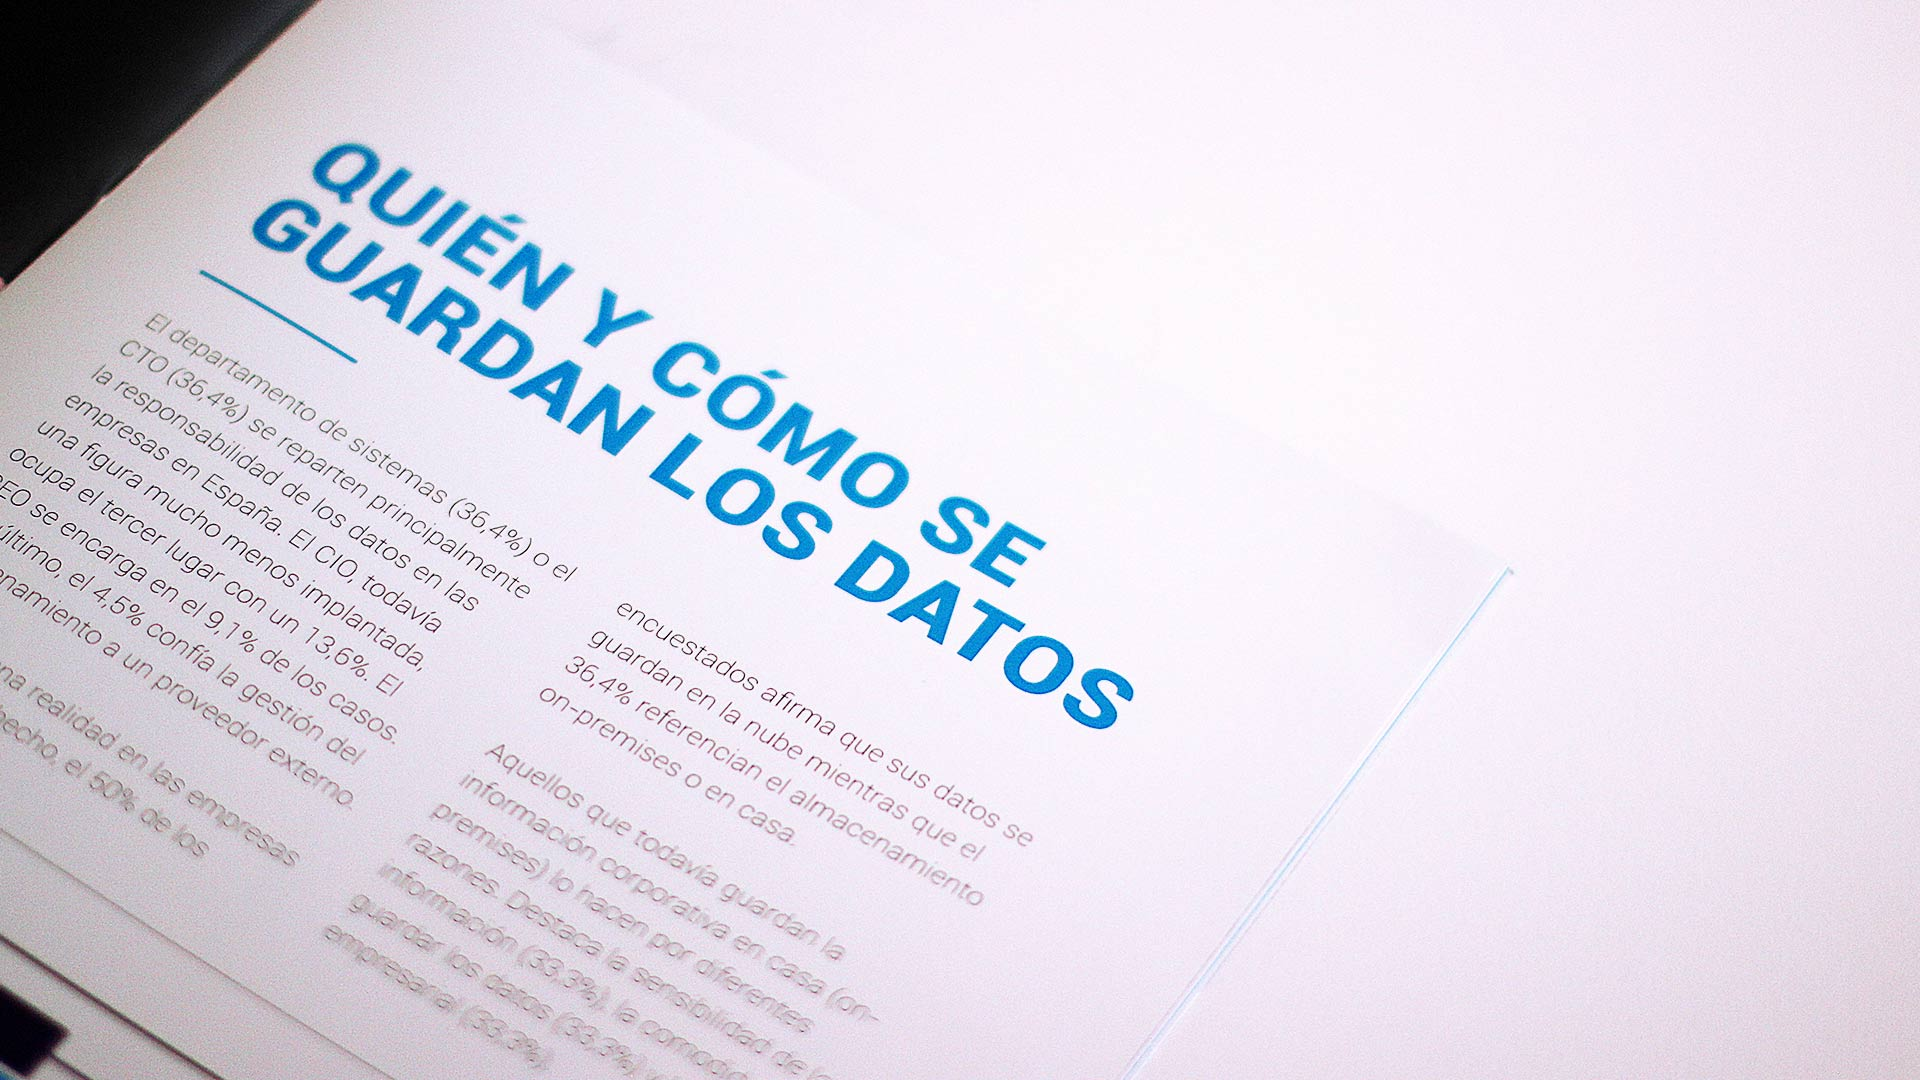 netapp-mediacloud-content-marketing-informe-resumen-ejecutivo-ebook-2017-13